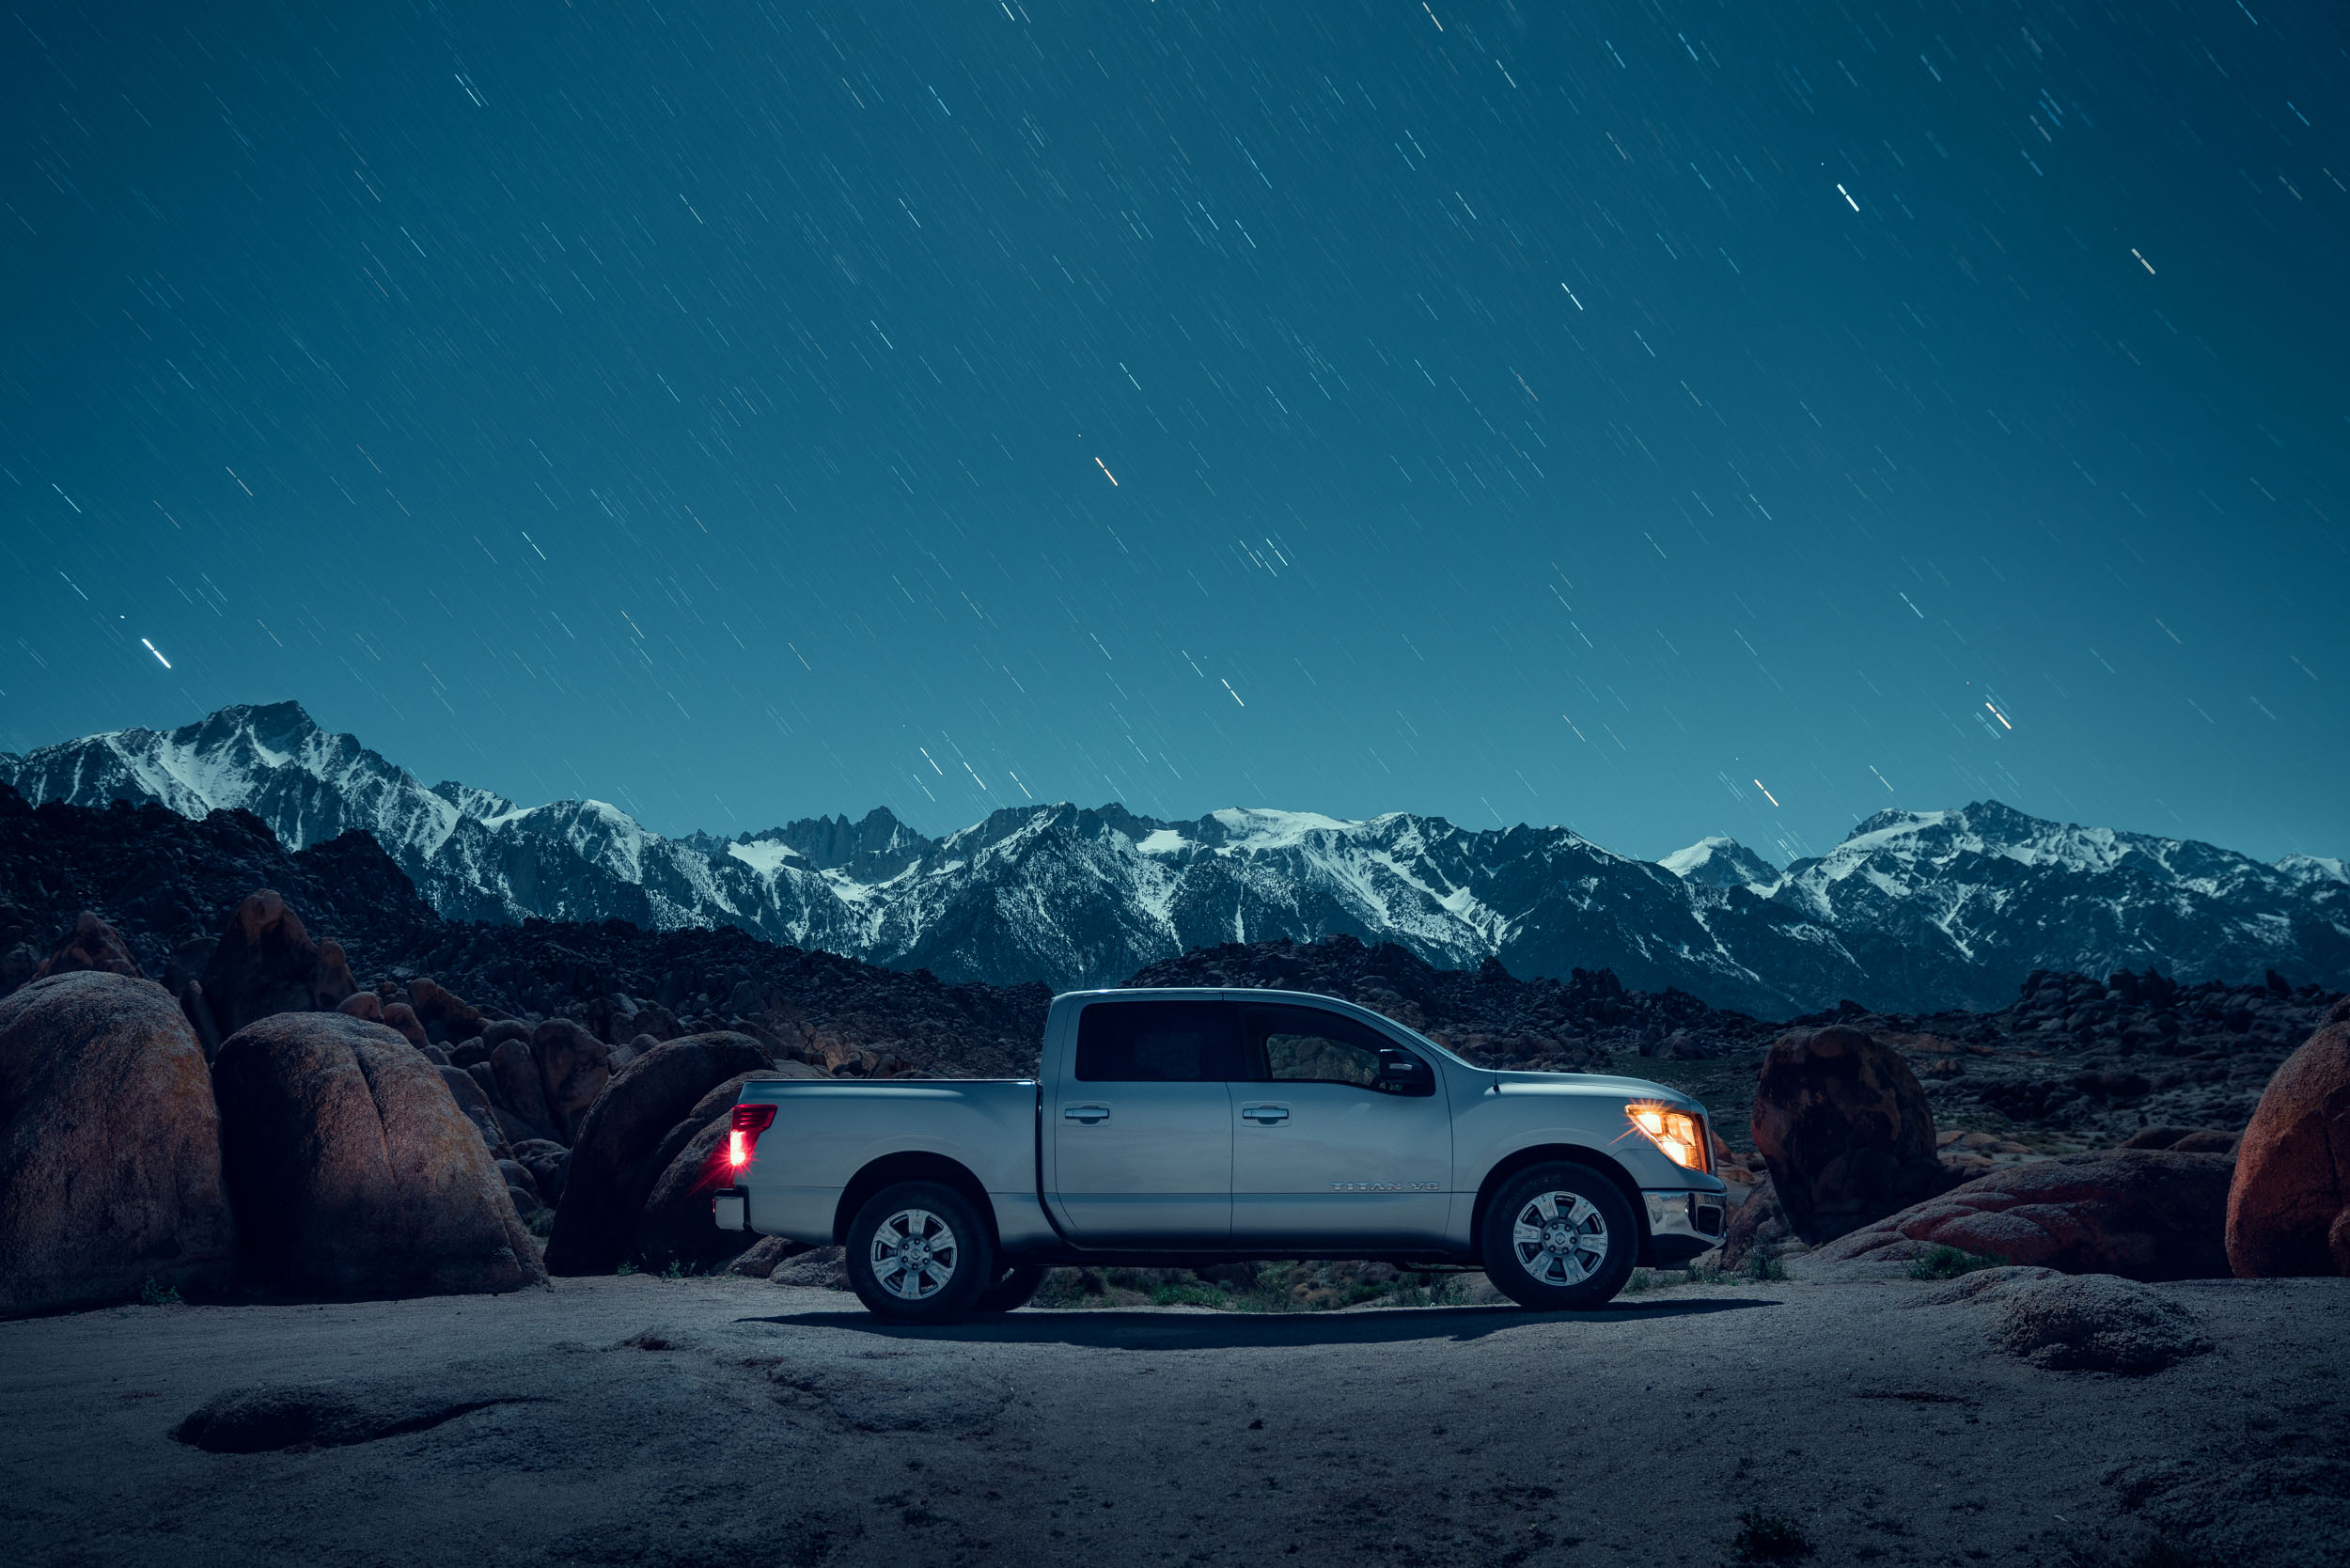 Silver Nissan pickup truck in the Alabama Hills desert at night in front of Mt Whitney full of stars.